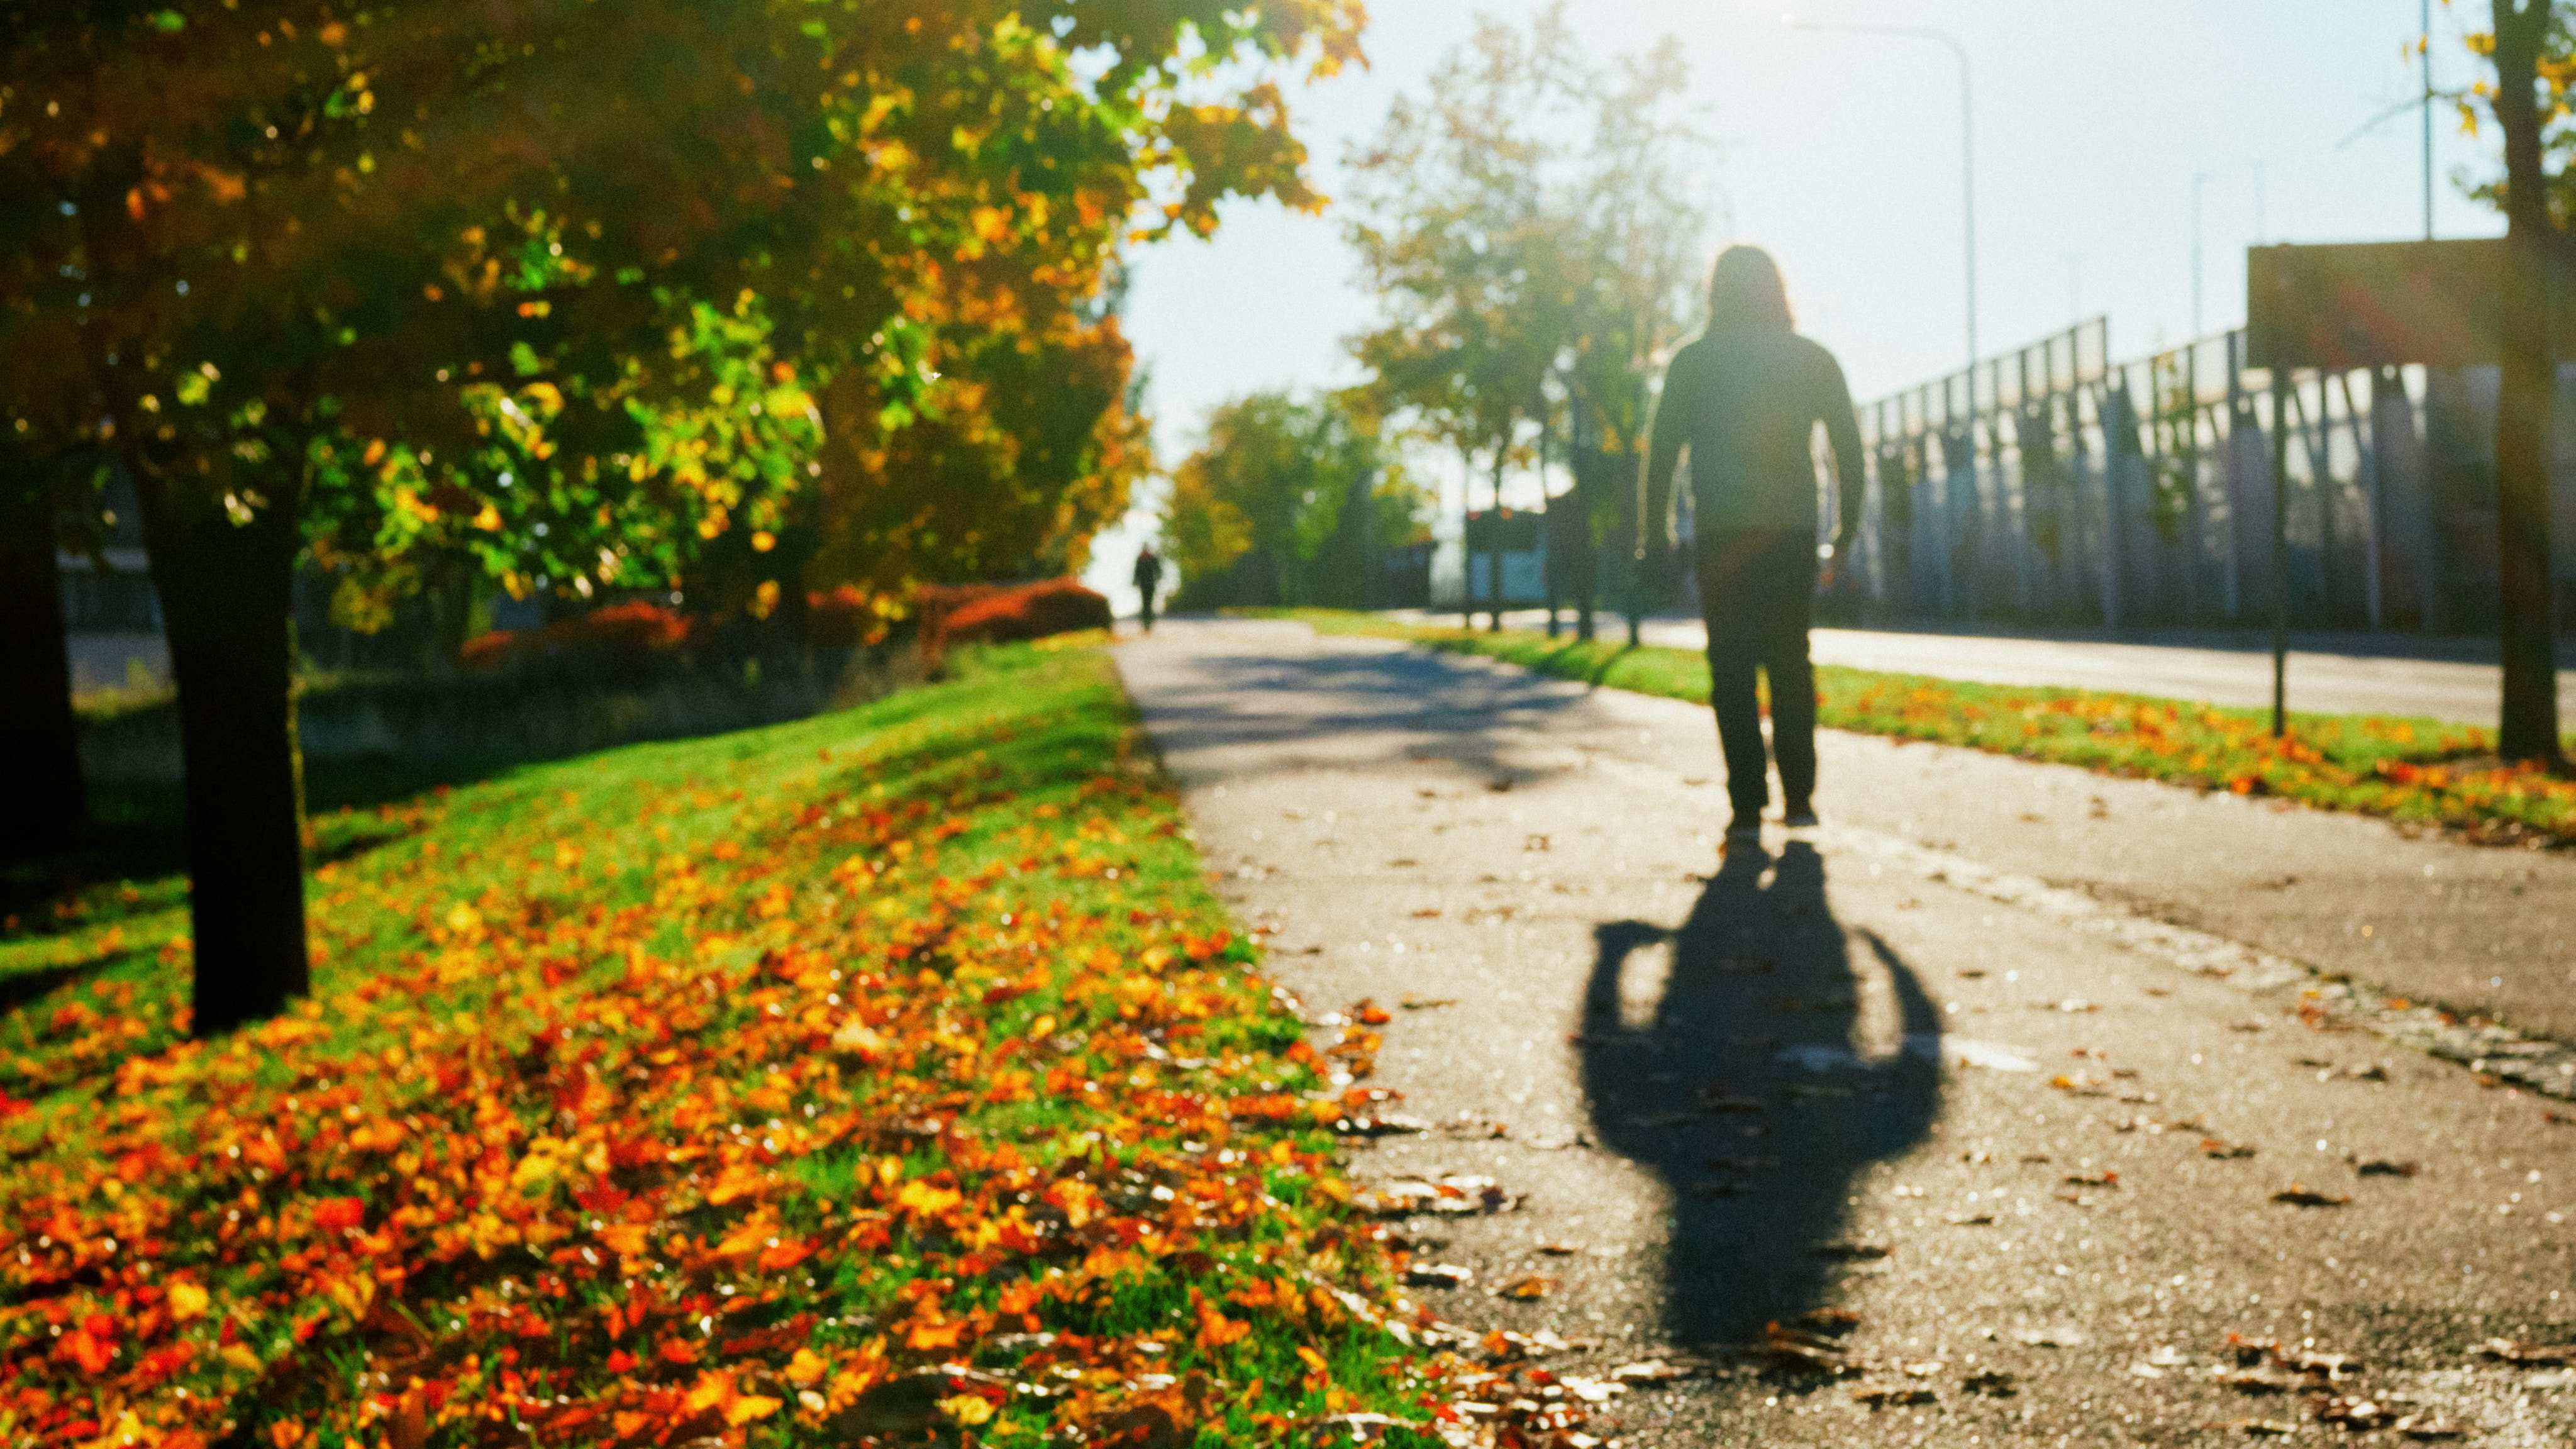 another autumn picture, against the light. silhouette of a walking person on the sidewalk on the right, bright orange maple leaves on green grass on the left